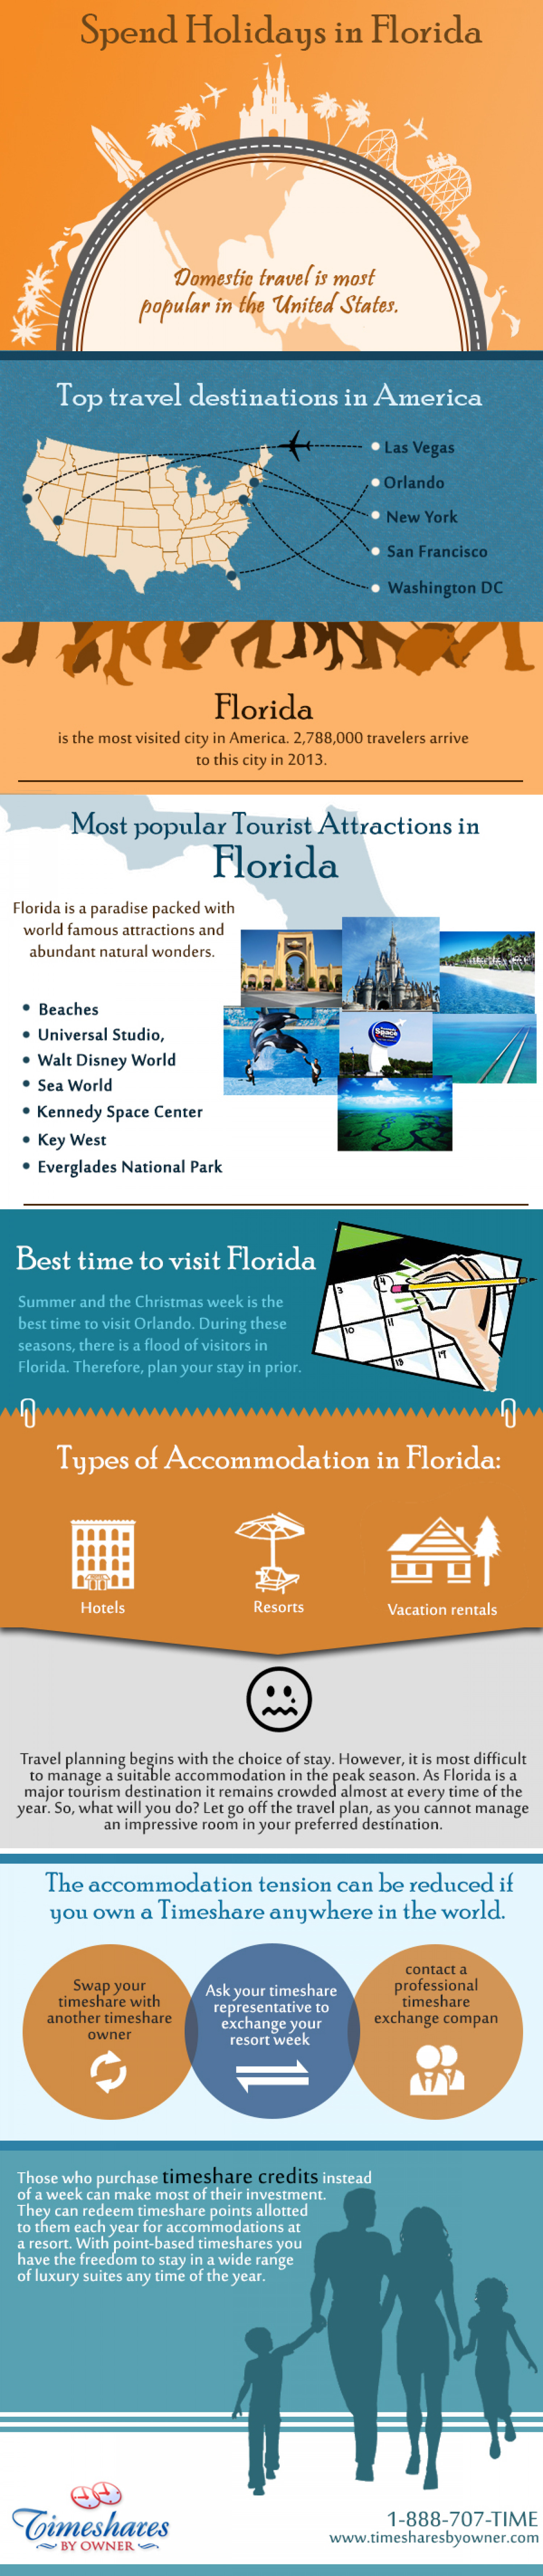 Spend Holidays in Florida Infographic